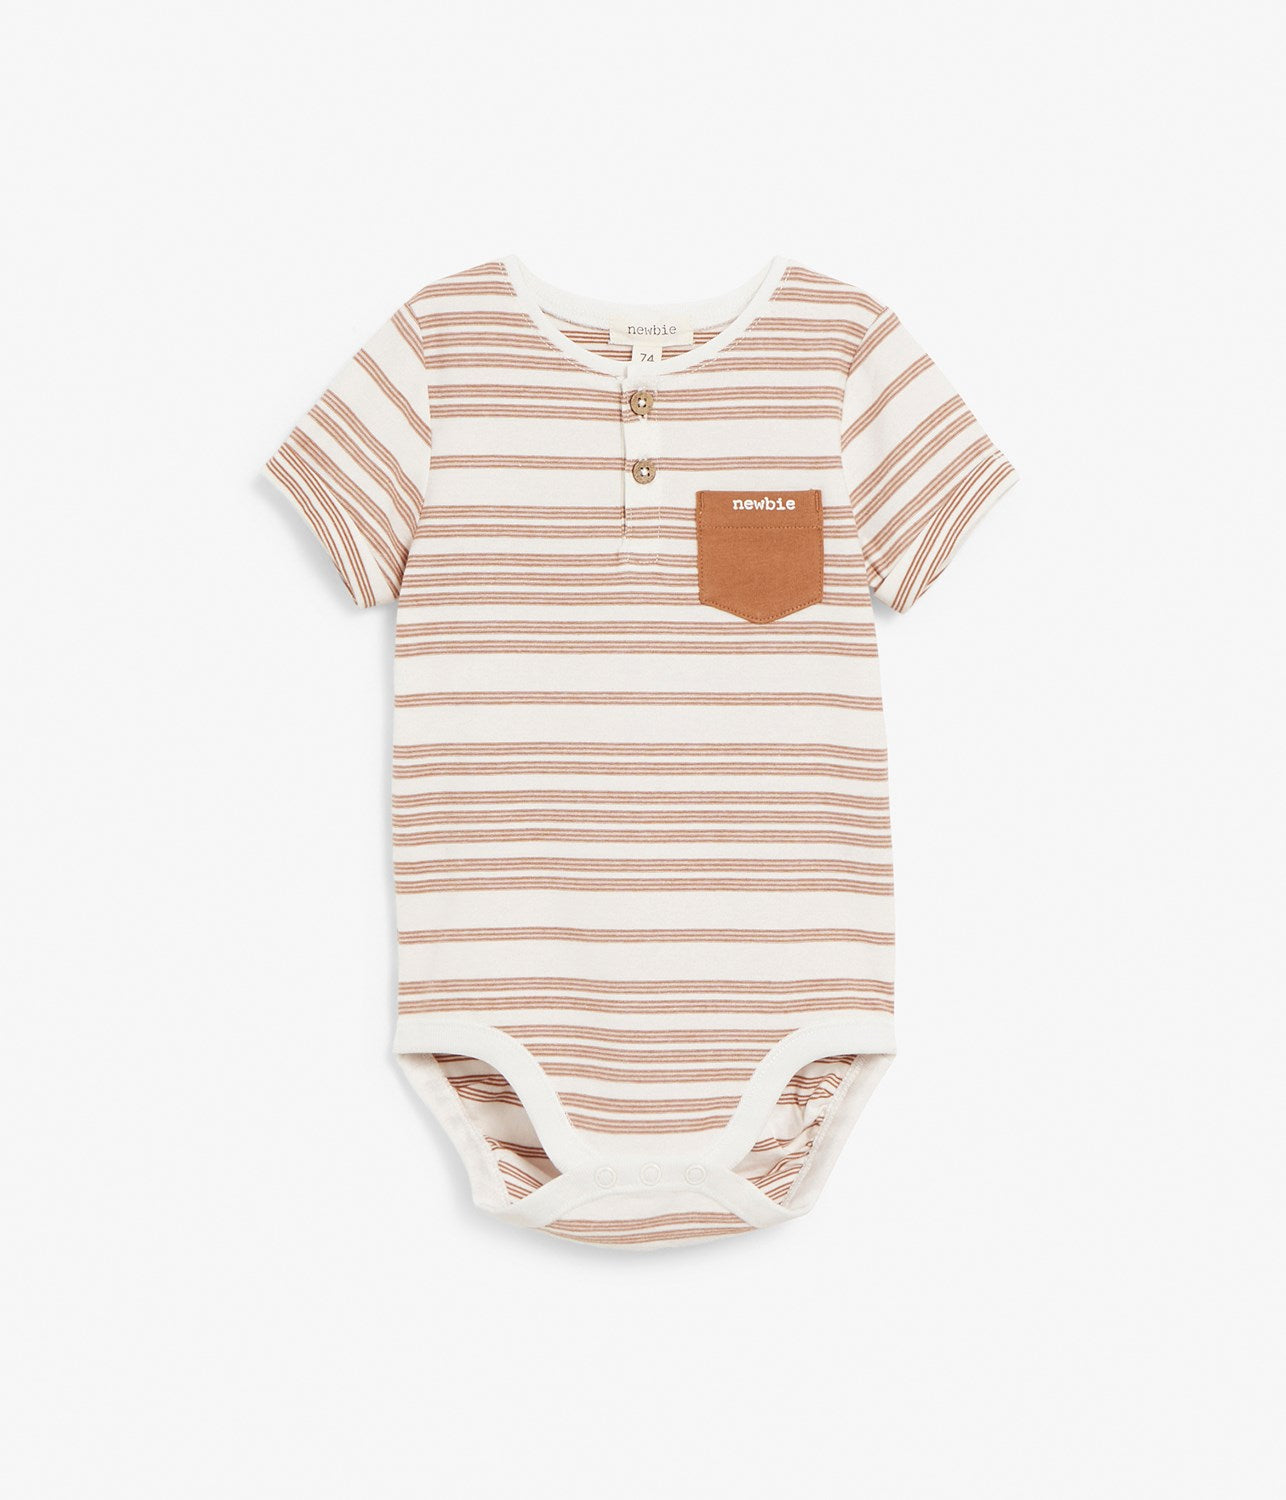 Baby brown striped body